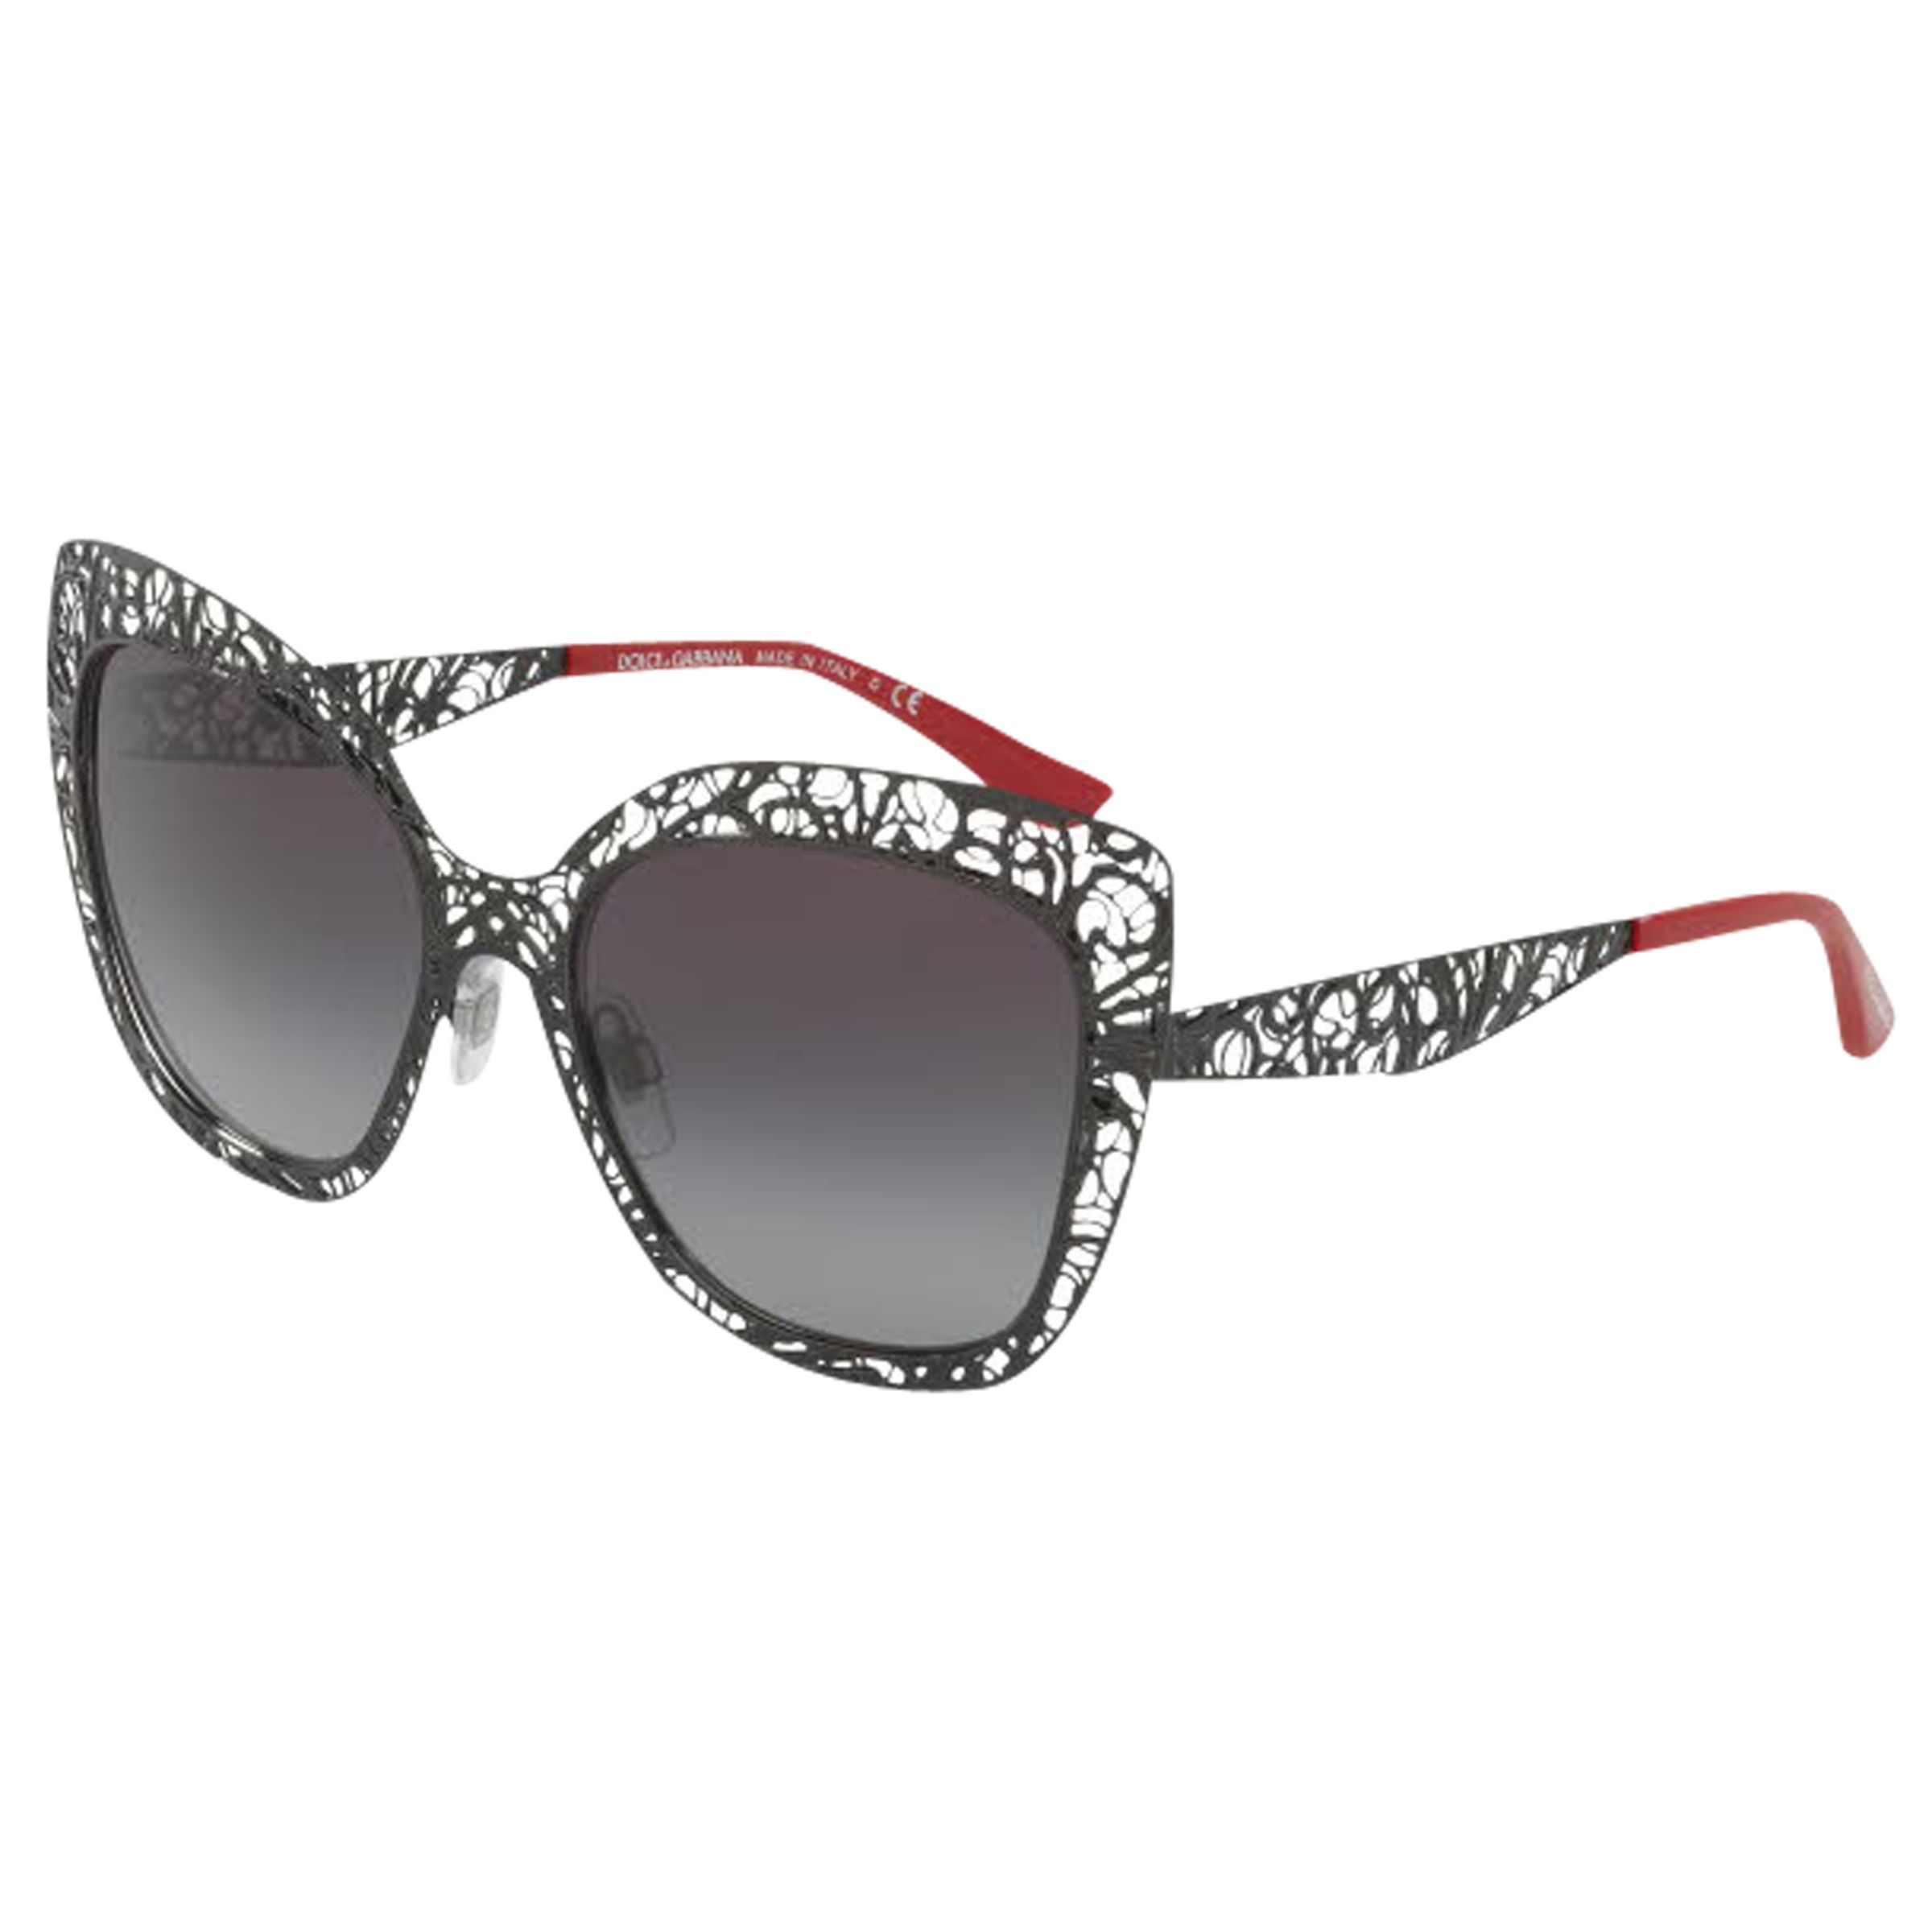 Dolce & Gabbana Dolce & Gabbana DG2164 Cat's Eye Sunglasses, Multi/Black Gradient